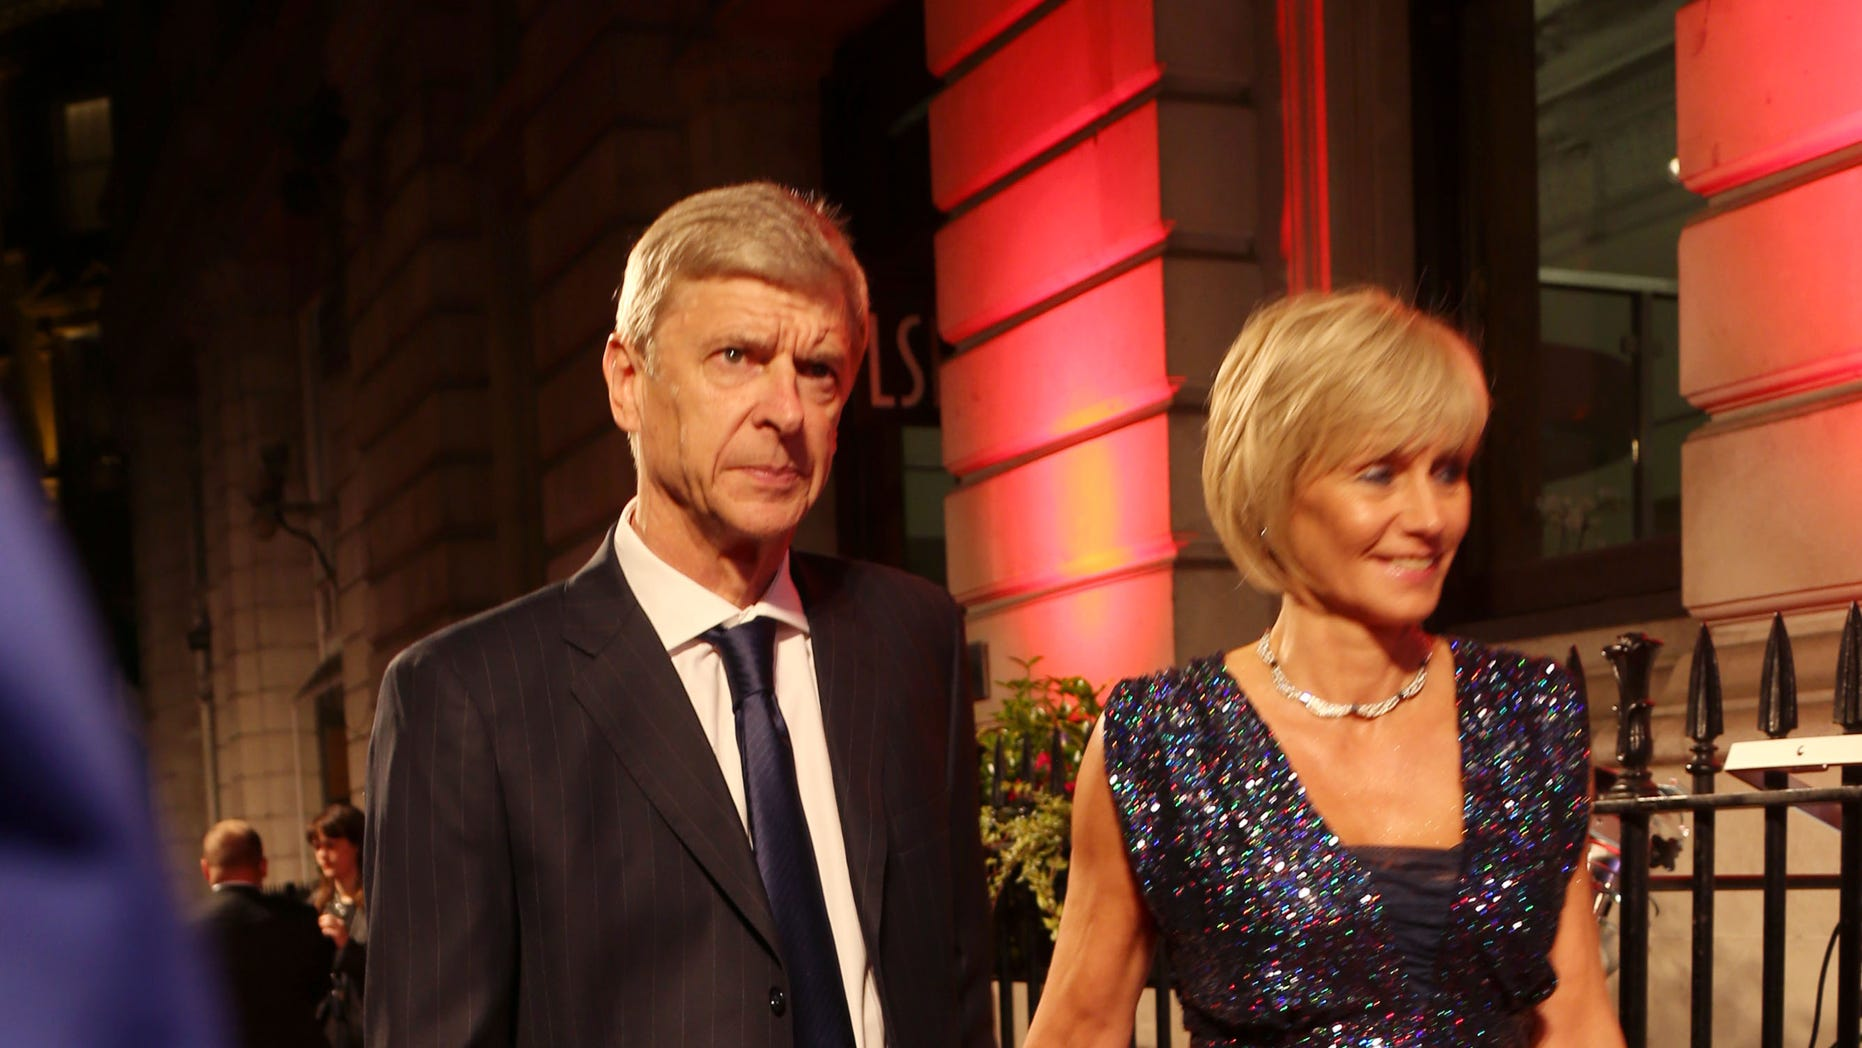 The French manager of Britain's Arsenal soccer club, Arsene Wenger and wife Annie, arrive for the British Film Institute (BFI) London Film Festival Gala Dinner in central London, Tuesday, Oct. 8, 2013. The BFI event attracts many top names from the sports and arts field. (Photo by Joel Ryan/Invision/AP)